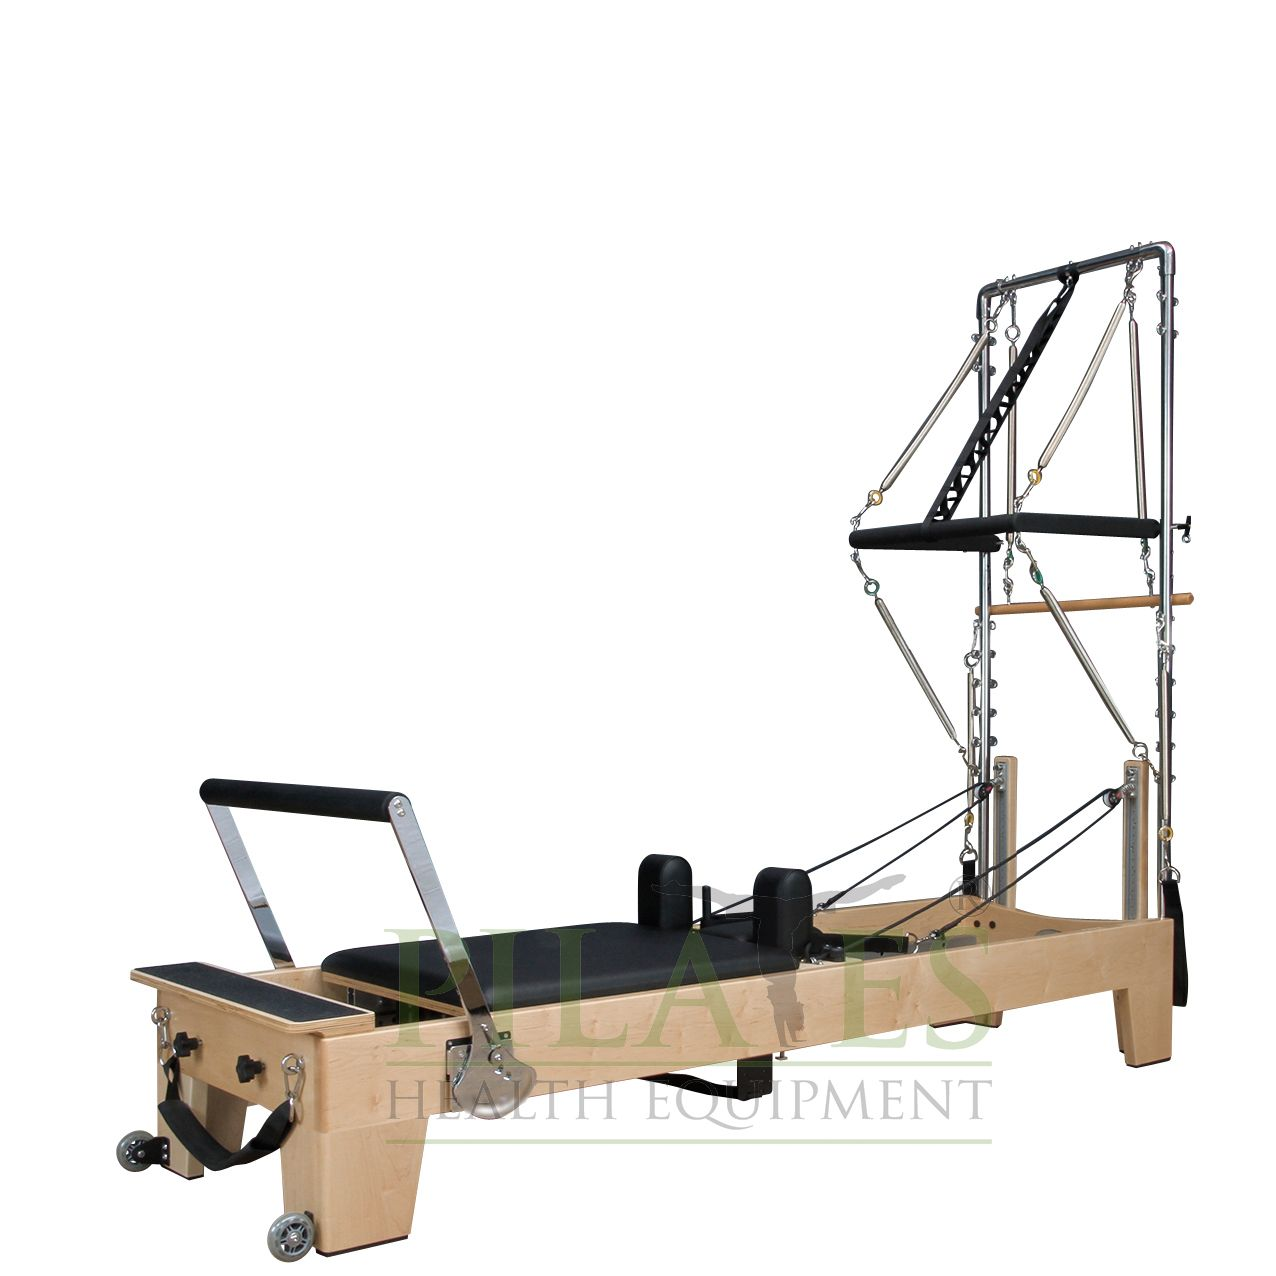 Signature Series MK II Pilates Reformer with Half Trapeze Bundle